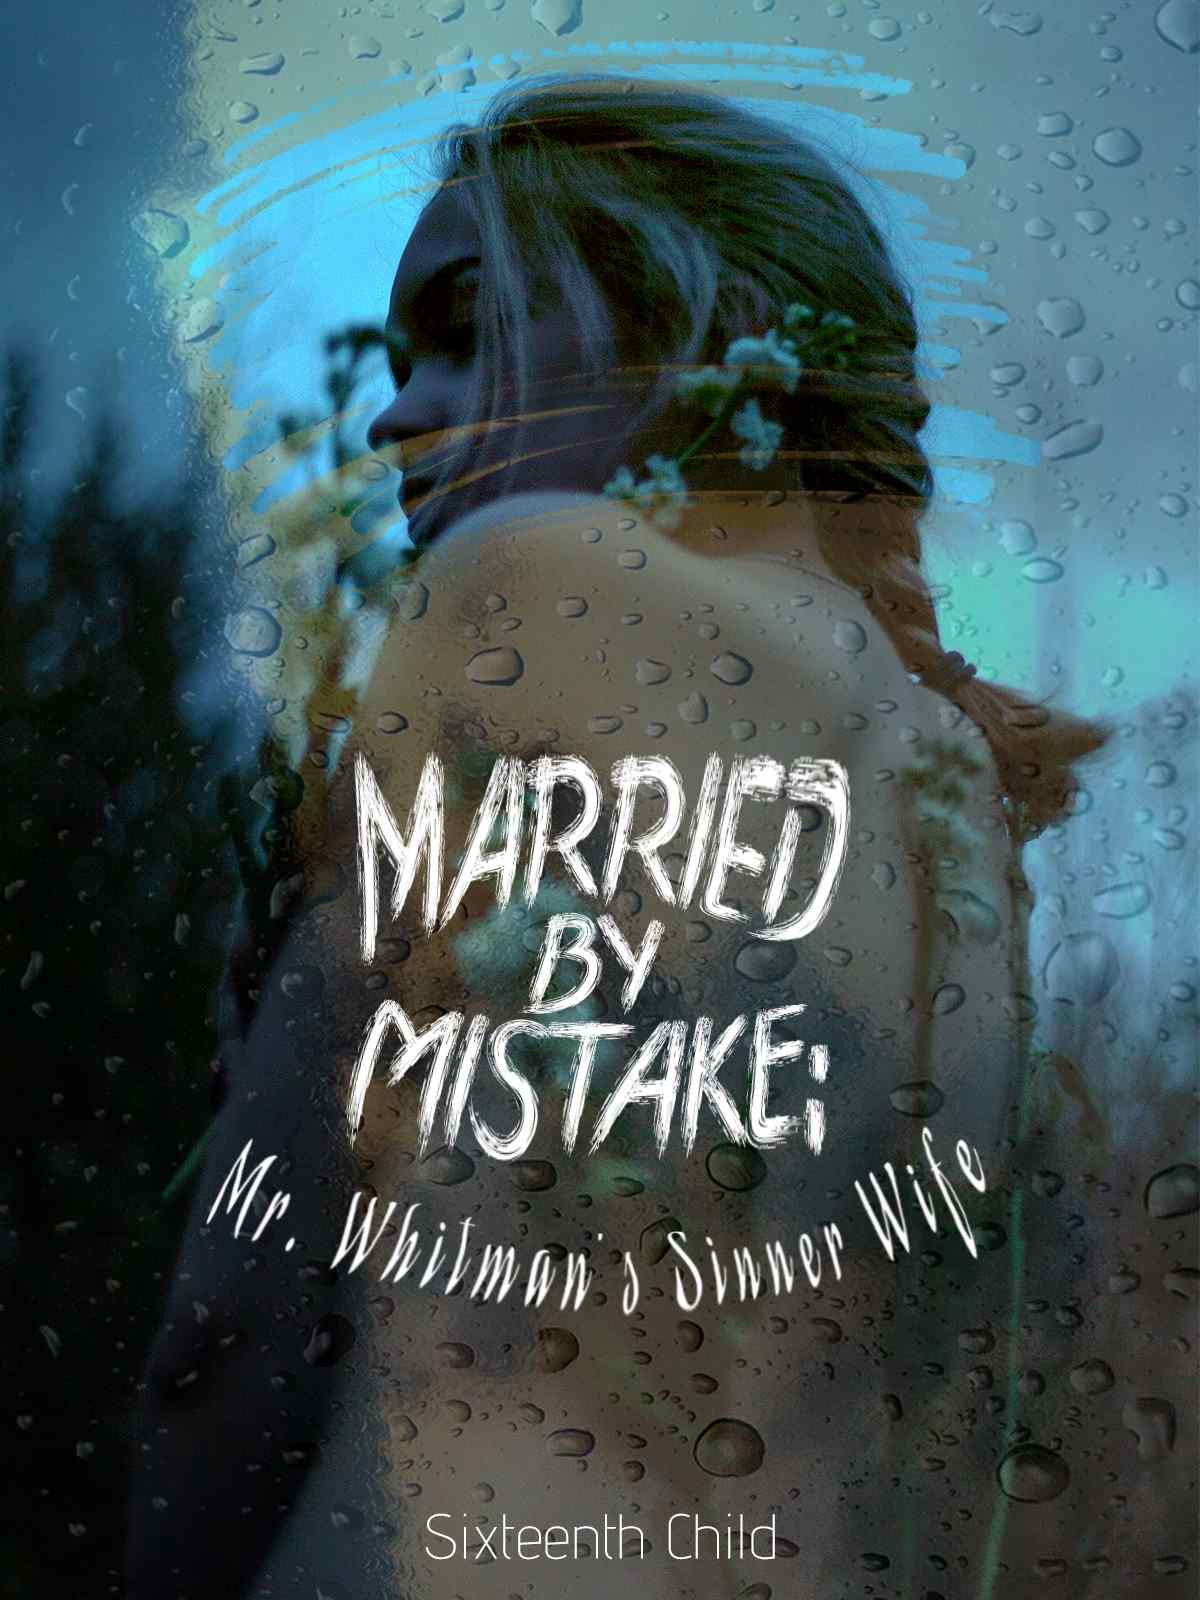 Married by Mistake: Mr. Whitman's Sinner Wife